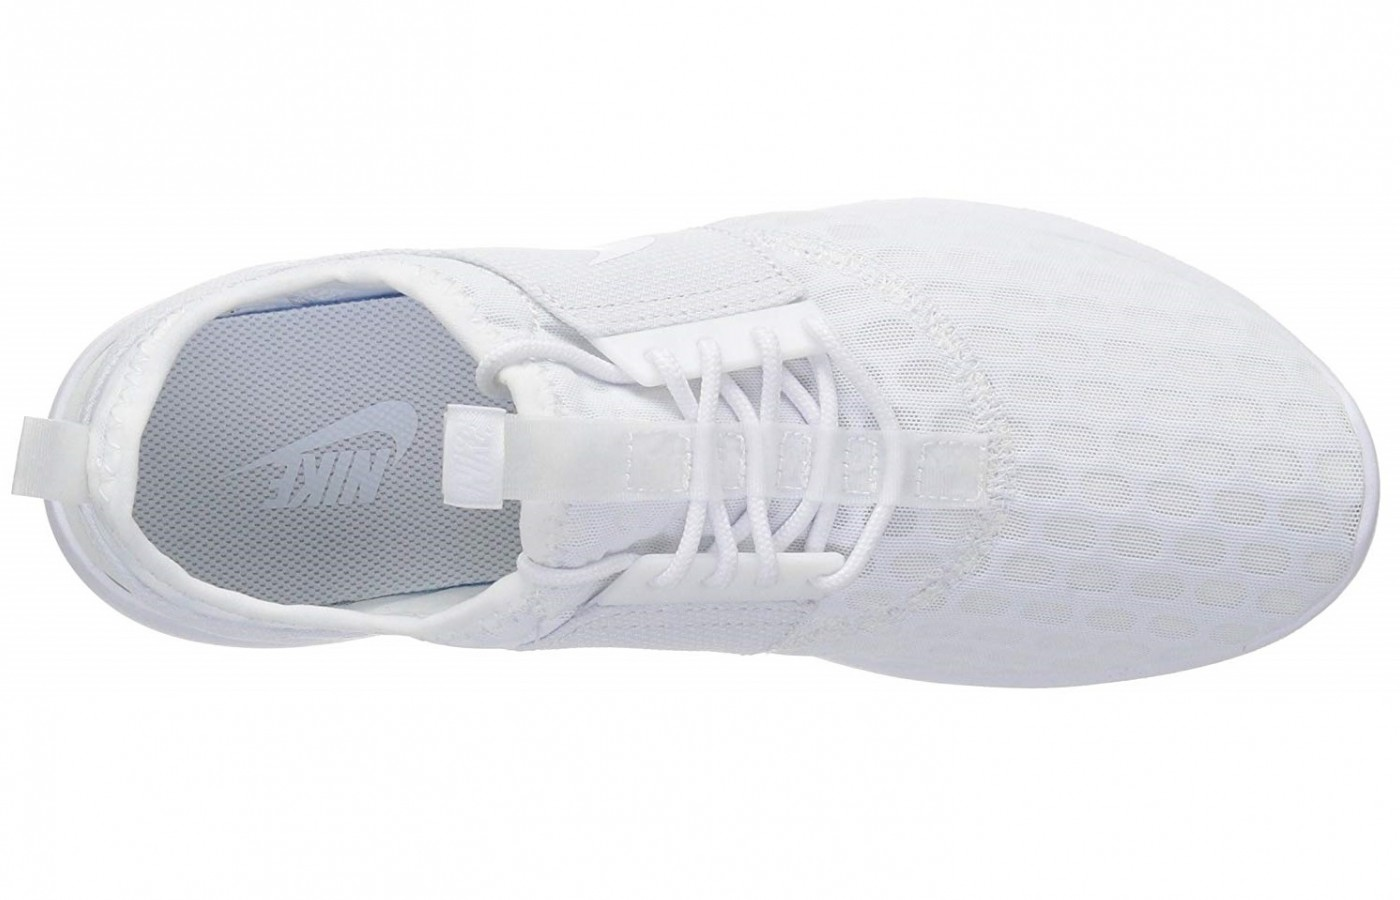 Nike Juvenate Top View